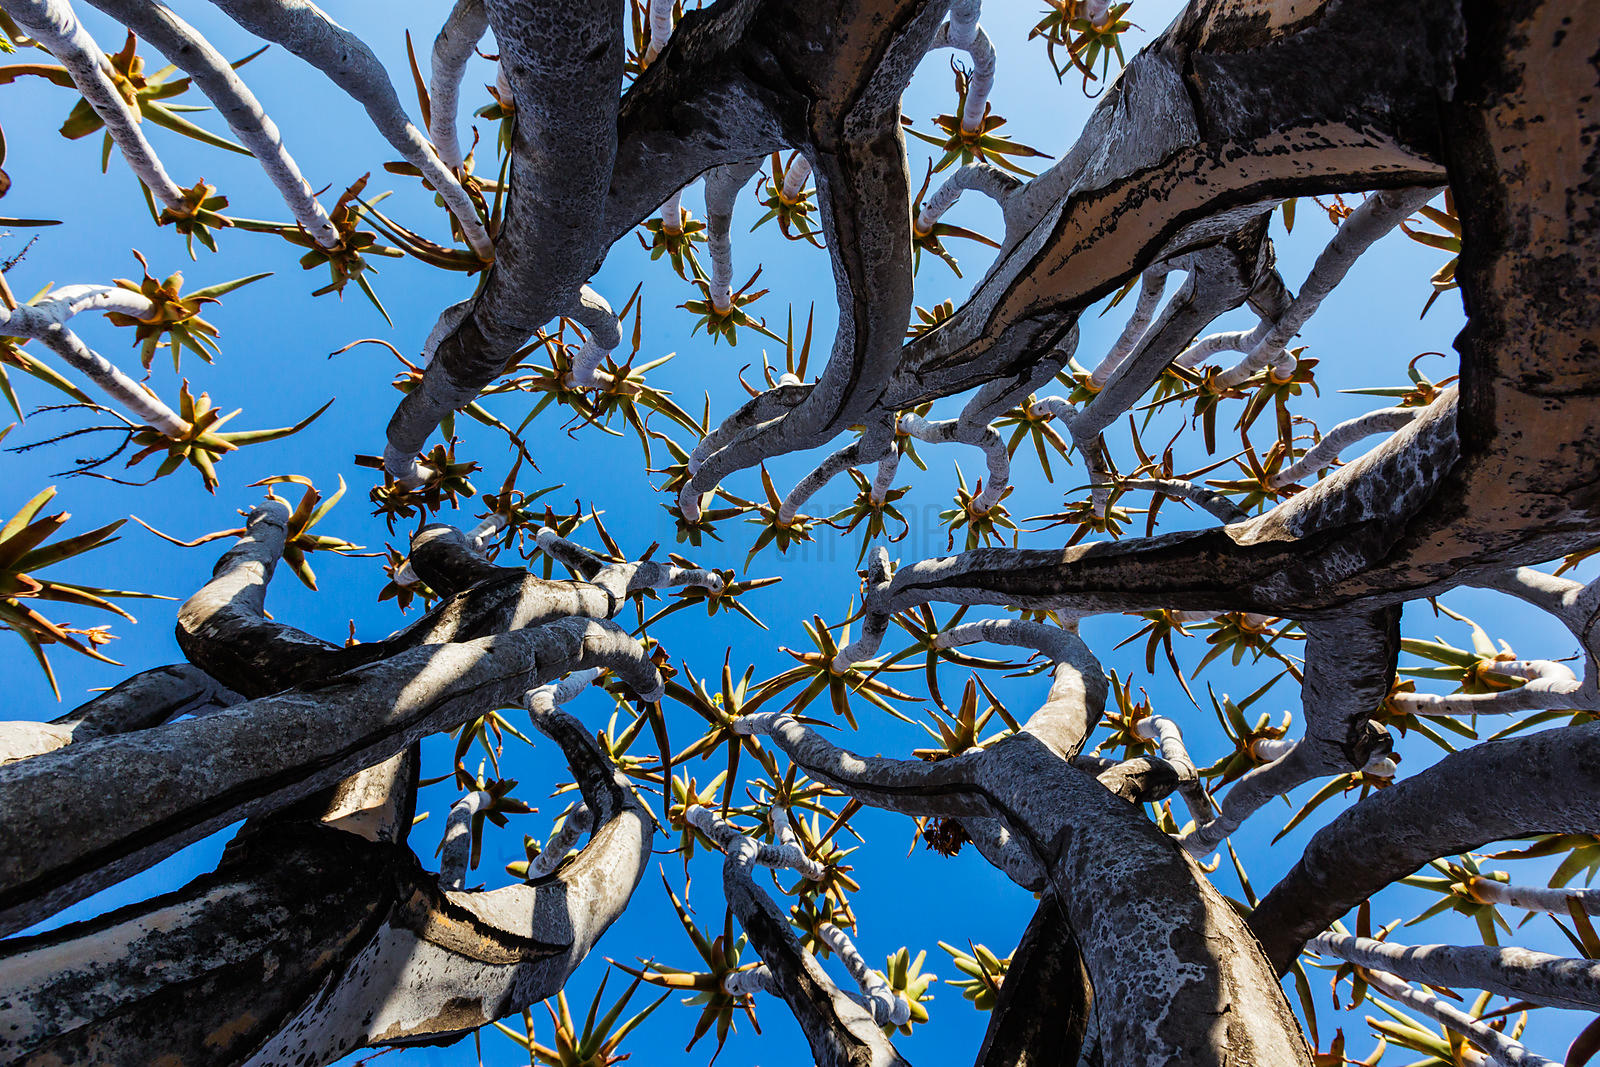 Looking Up Through the Branches of a Quiver Tree